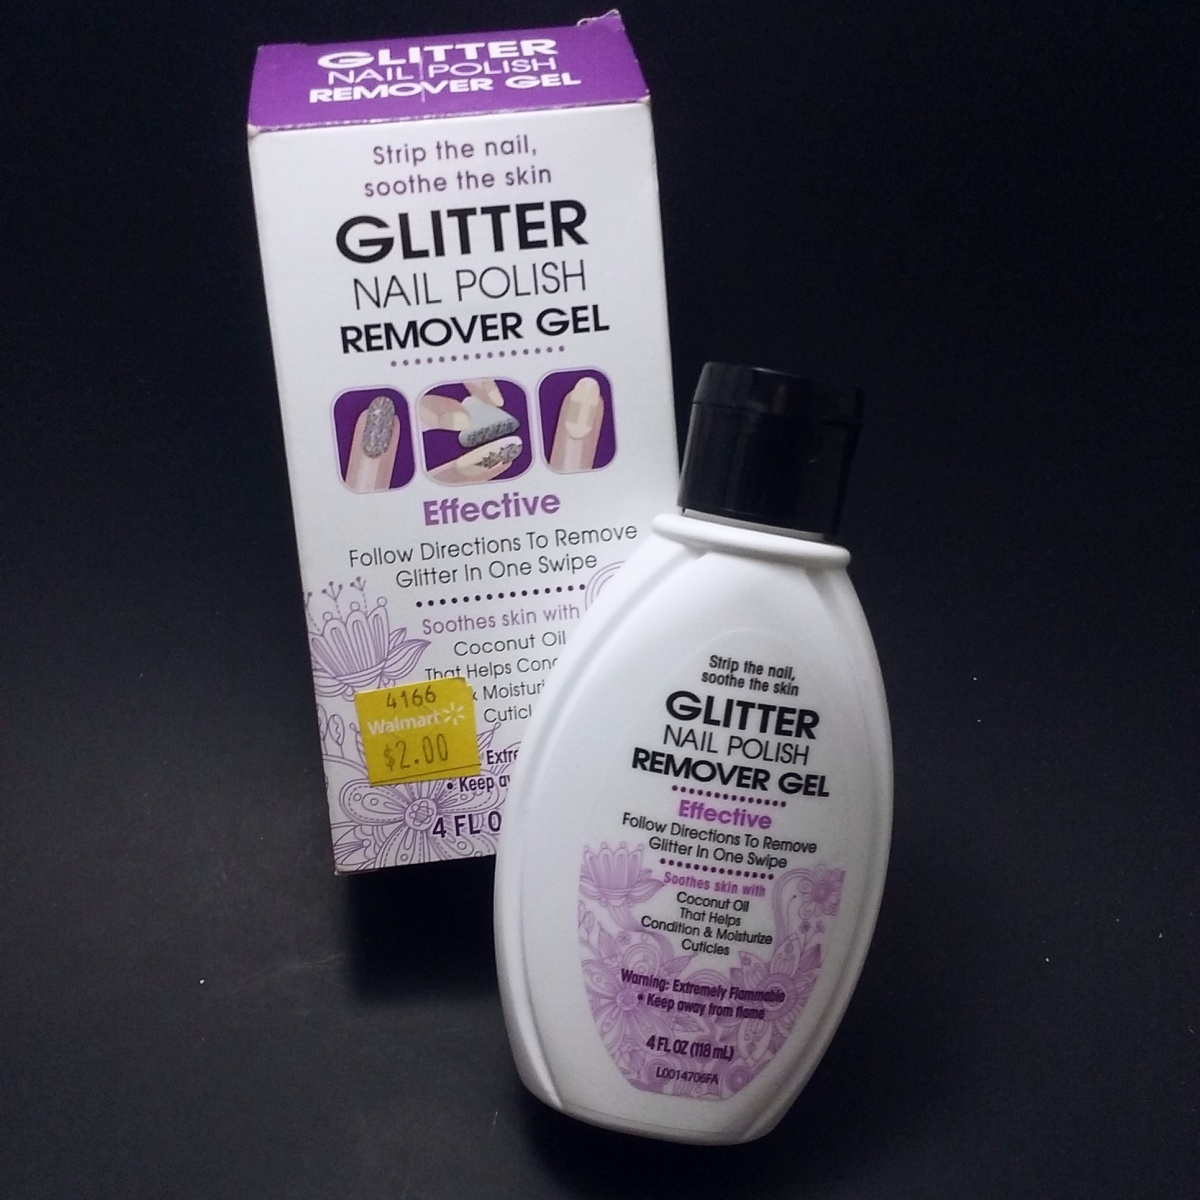 Glitter Nail Polish Remover Gel Review – Nails and Stuff (But Mostly ...